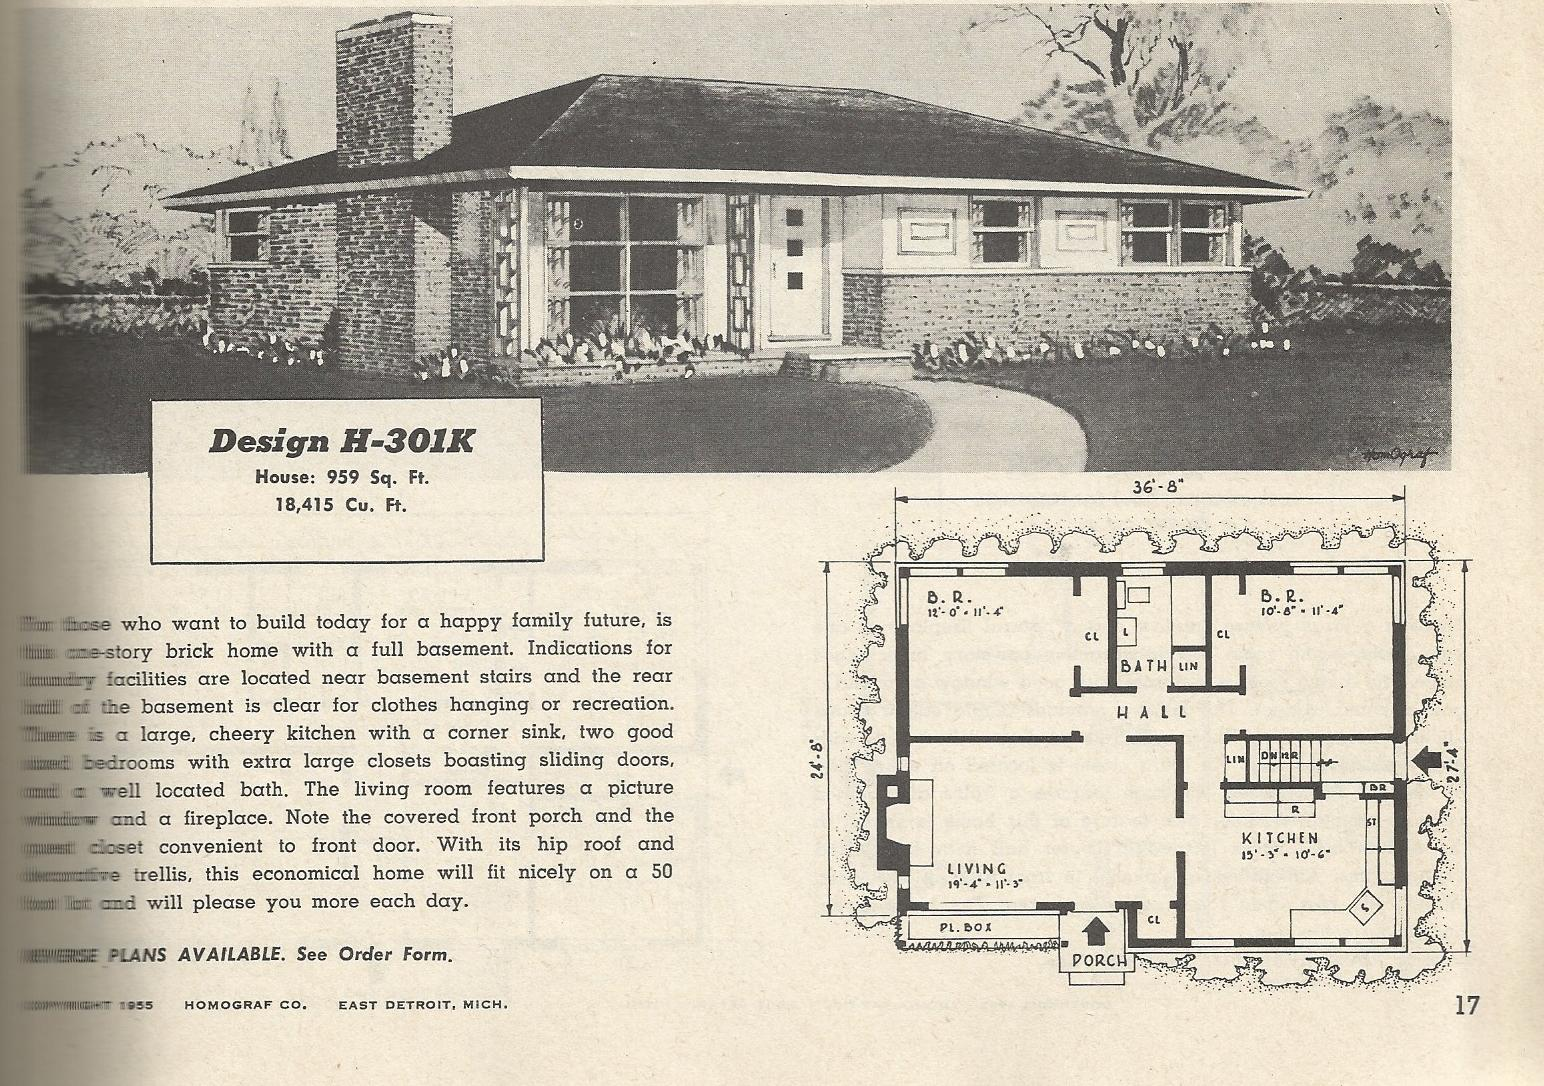 1950S House Gorgeous Vintage House Plans 1950S Budgetwise Homes  Antique Alter Ego Inspiration